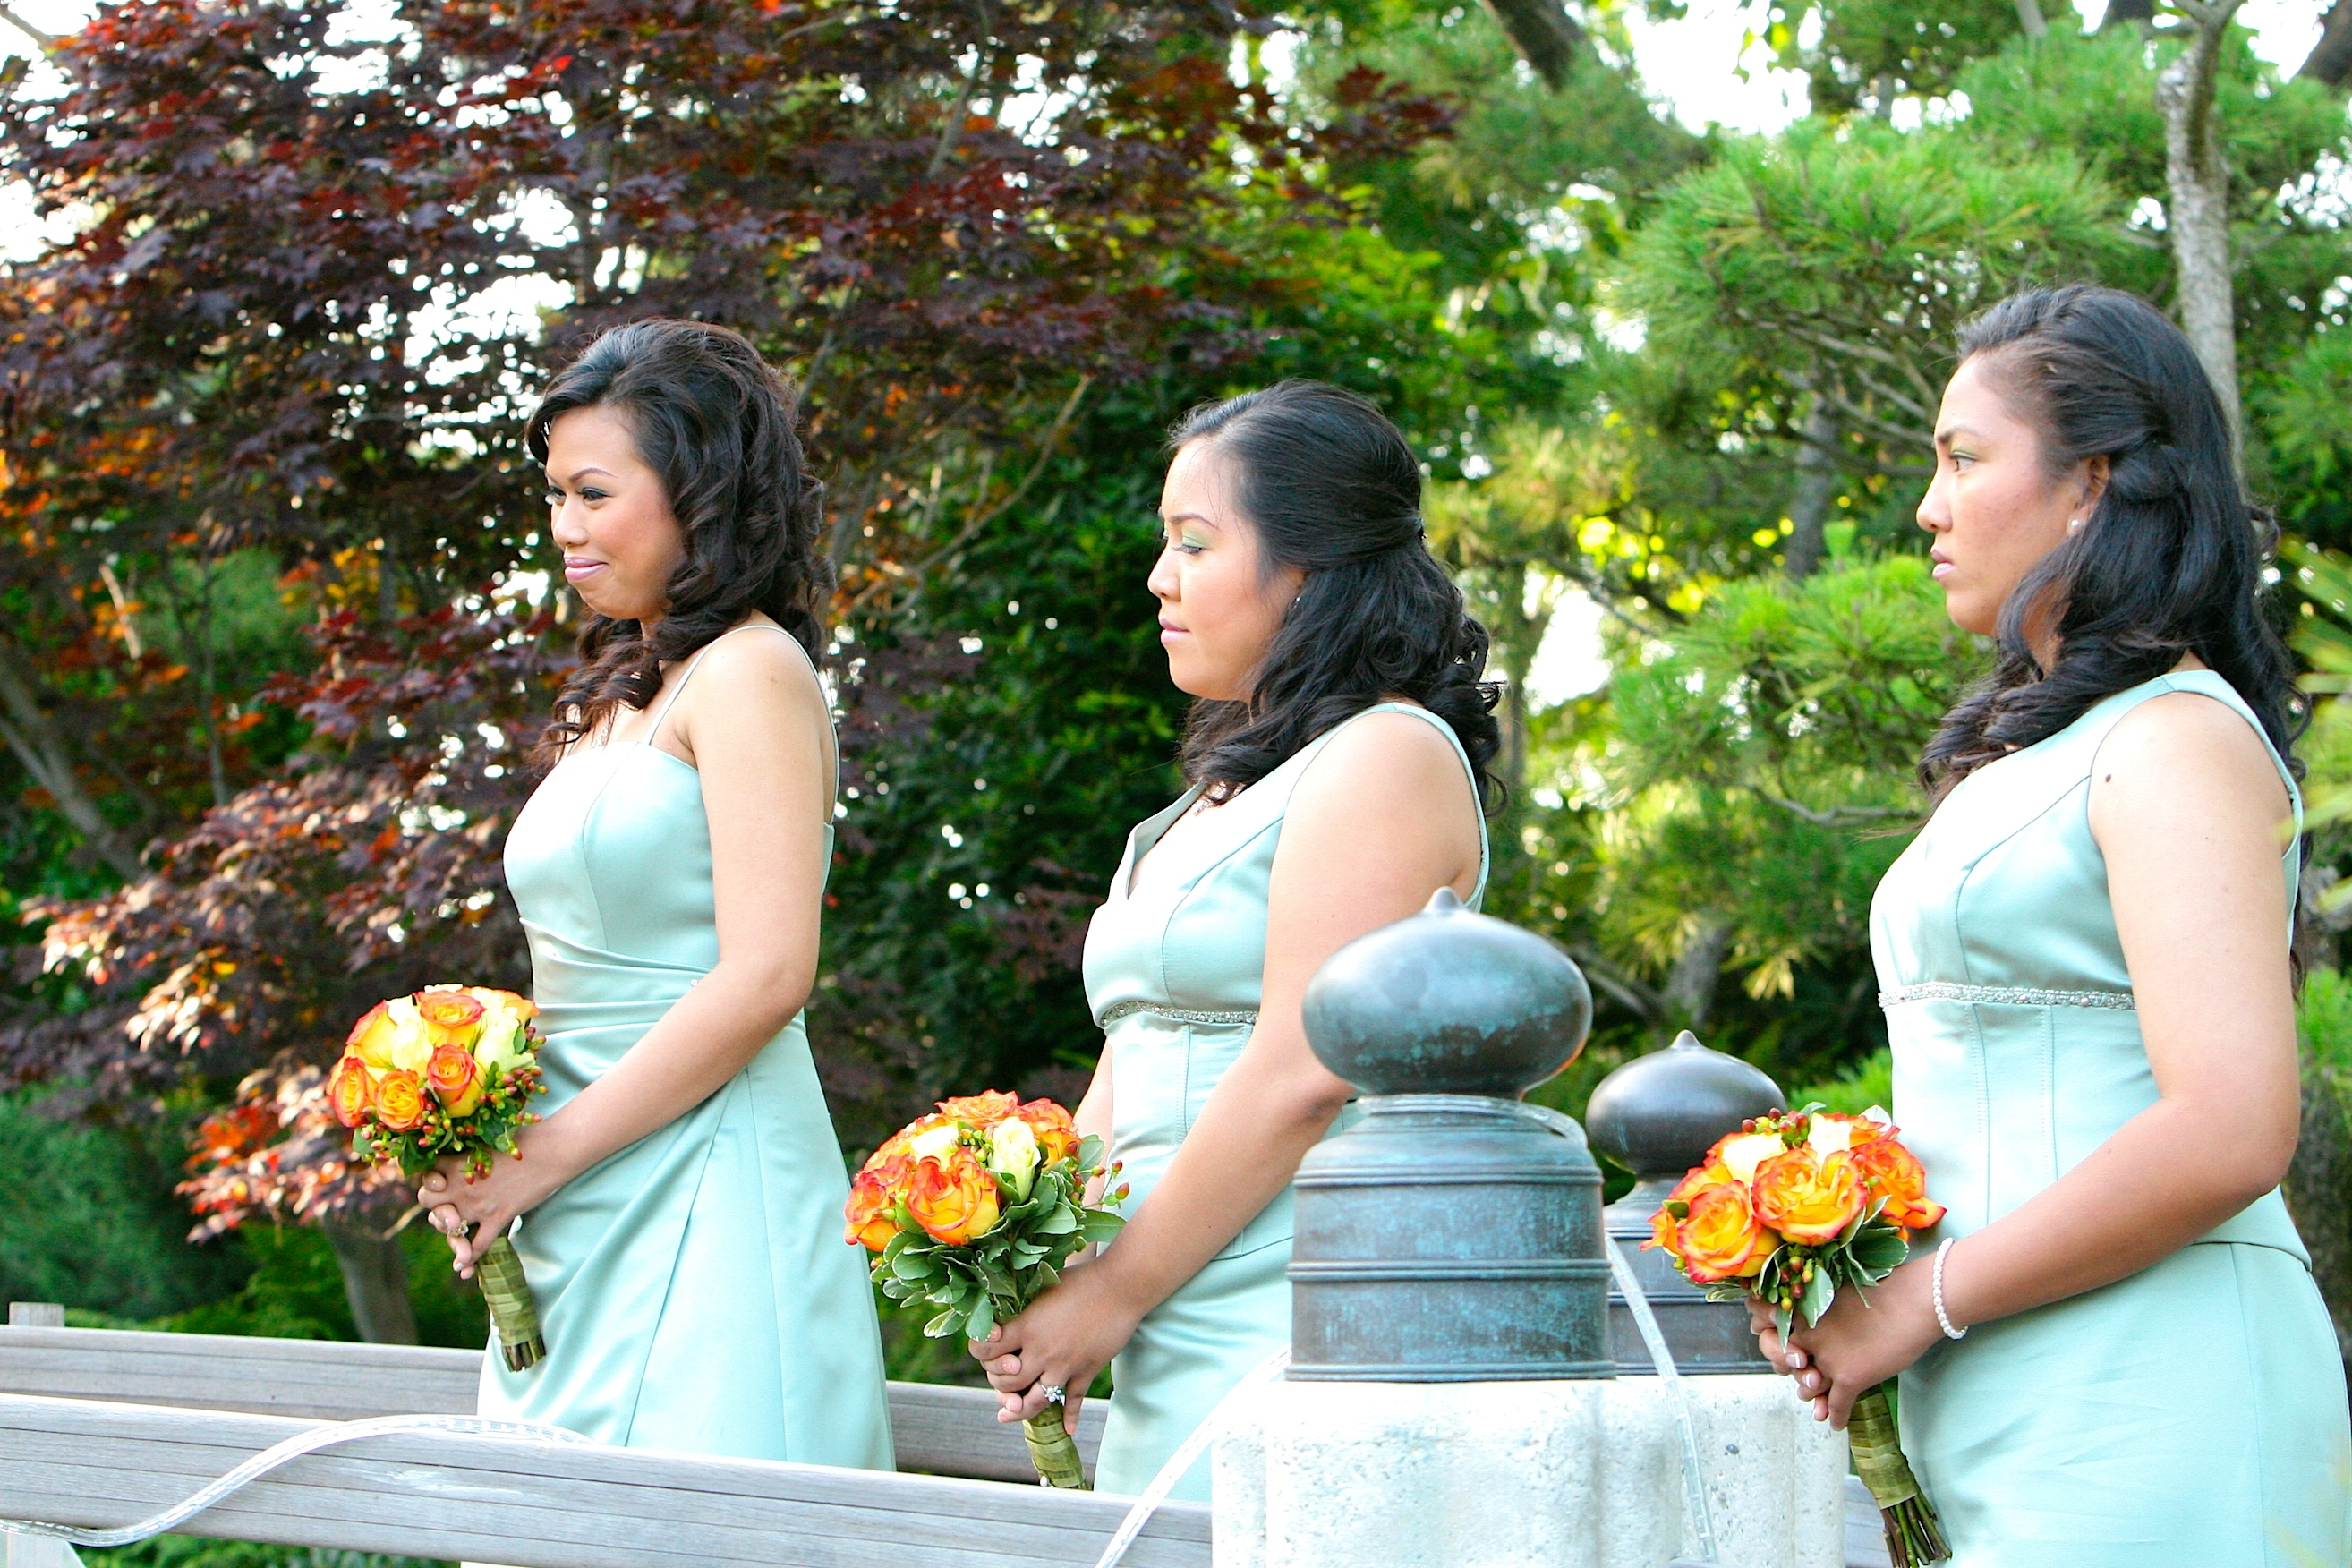 Ceremony, Flowers & Decor, Bridesmaids, Bridesmaids Dresses, Fashion